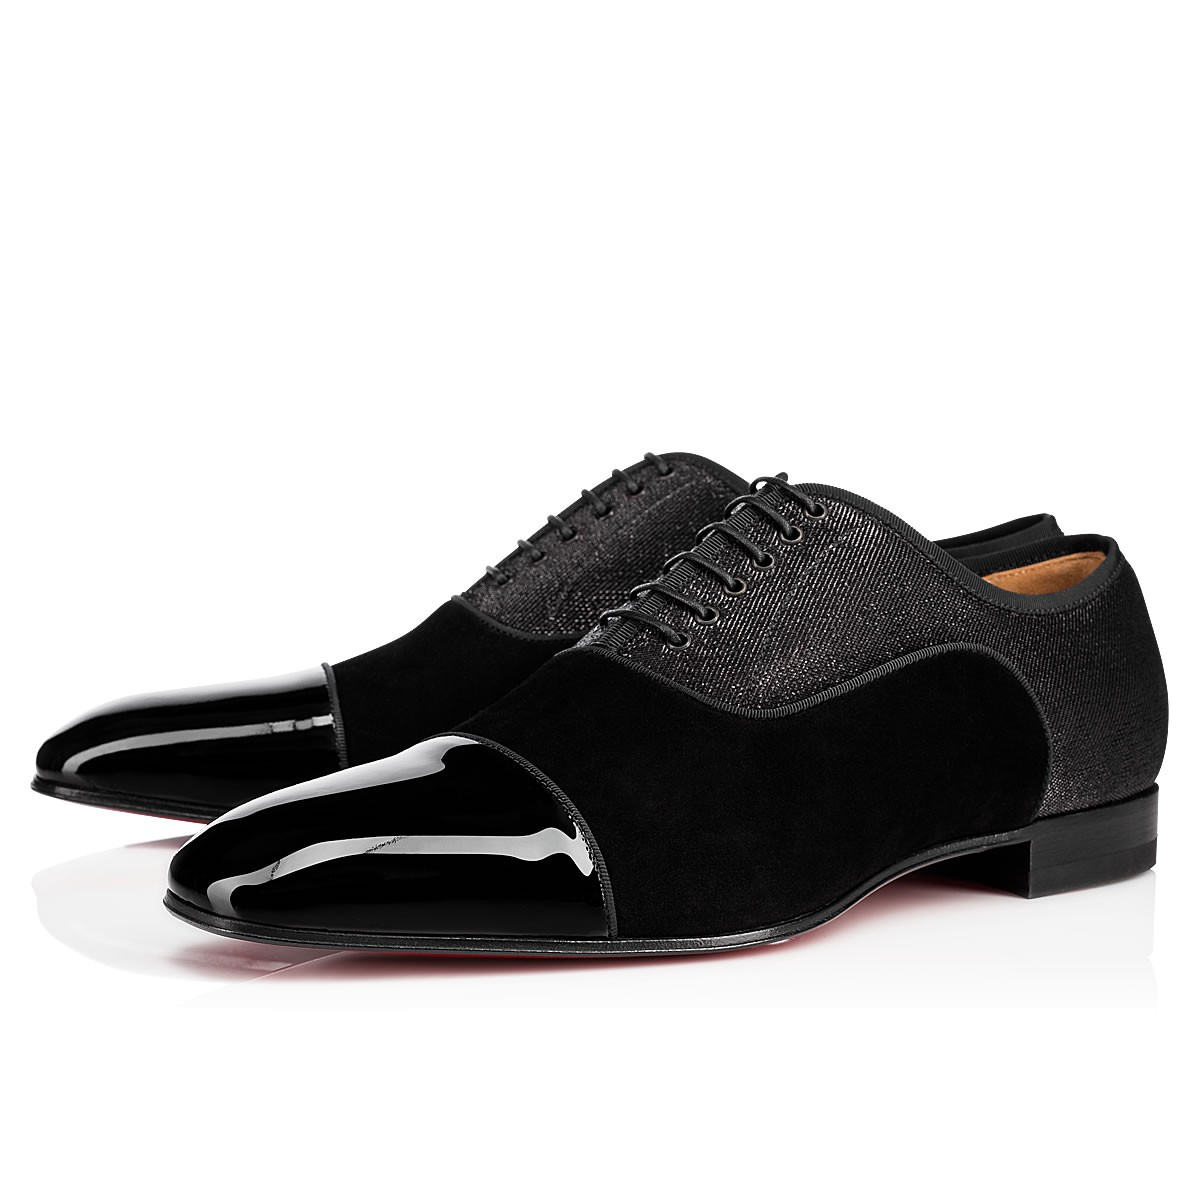 Men Shoes - Greggo Flat - Christian Louboutin